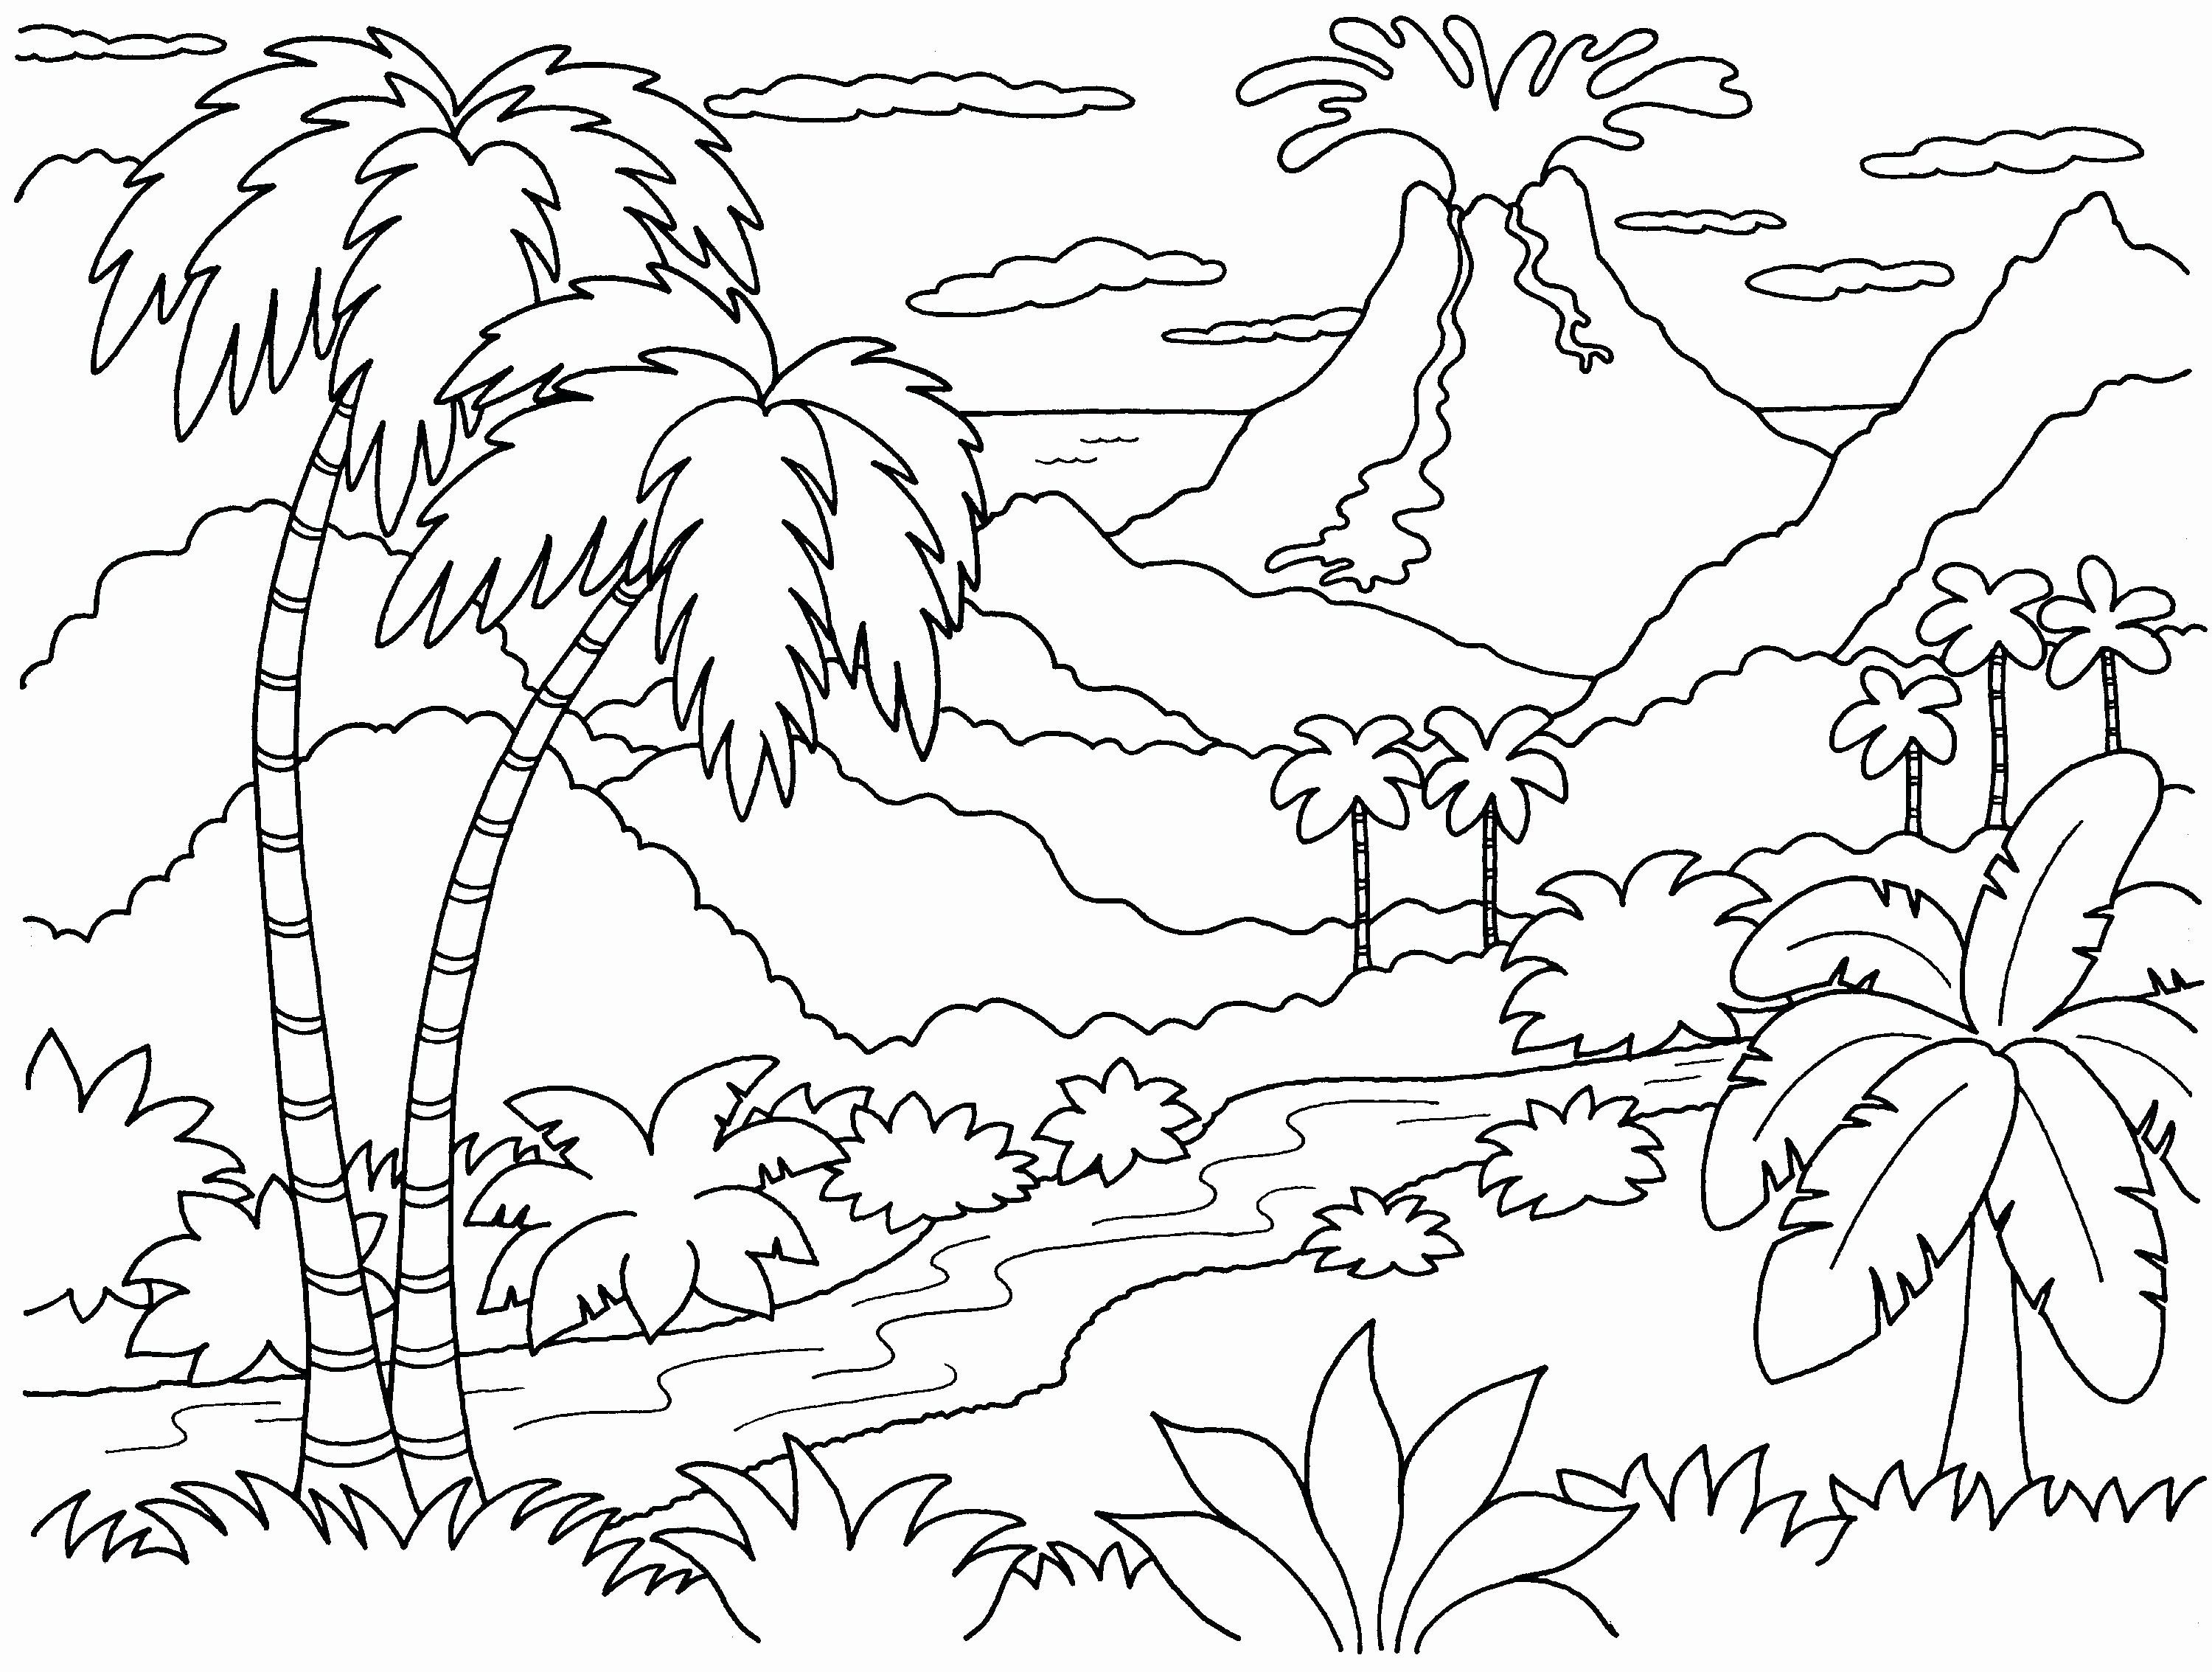 Nature Coloring Pages For Adults Elegant Coloring Pages Of Desert Plants Quorumsheet Coloring Pages Nature Beach Coloring Pages Tree Coloring Page